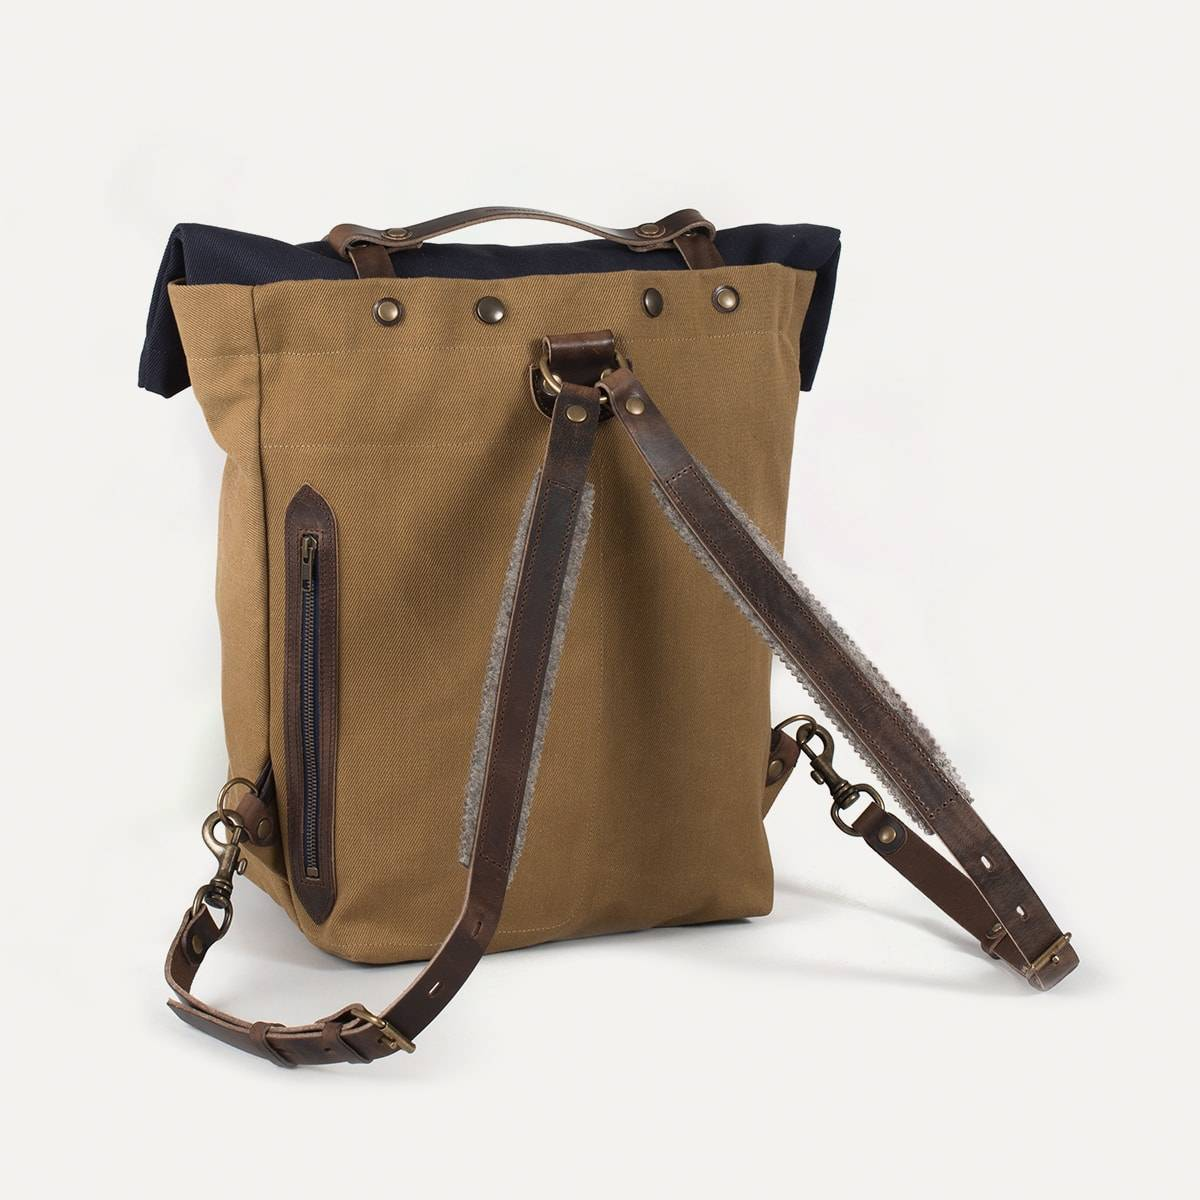 Blitz Motorcycles Scout Backpack - Navy/Camel (image n°5)